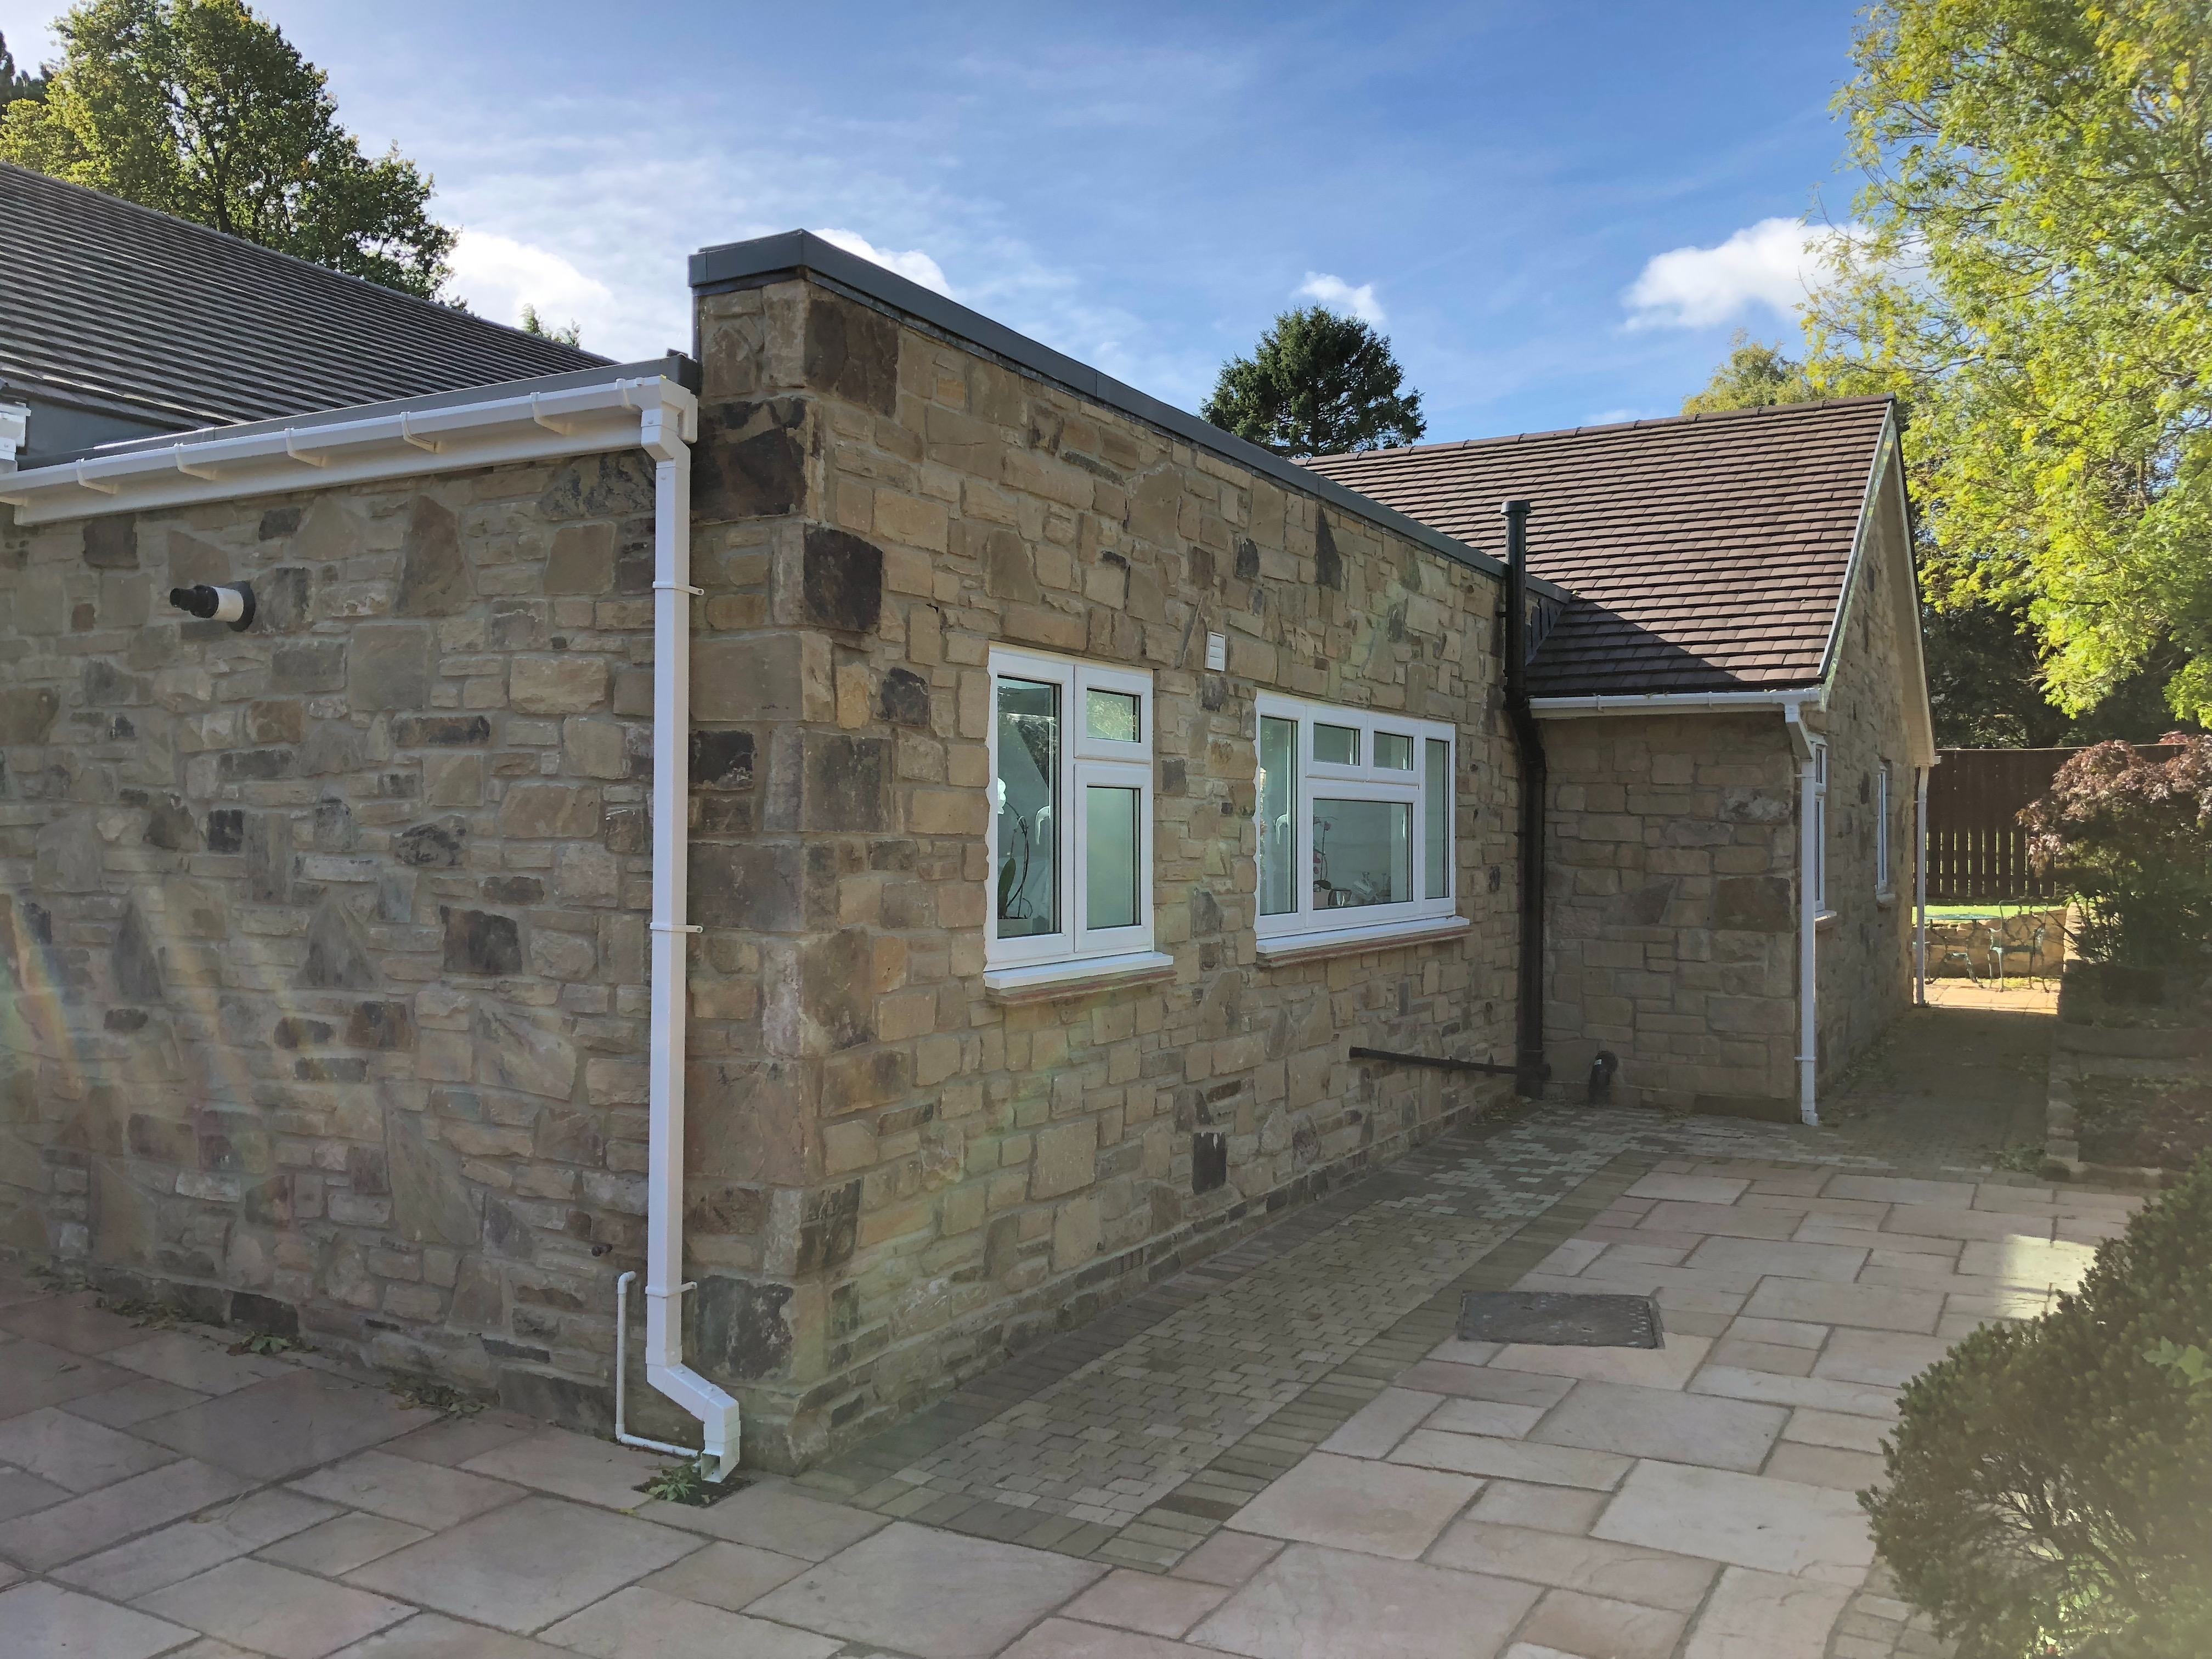 2. Stone Kitchen Extension